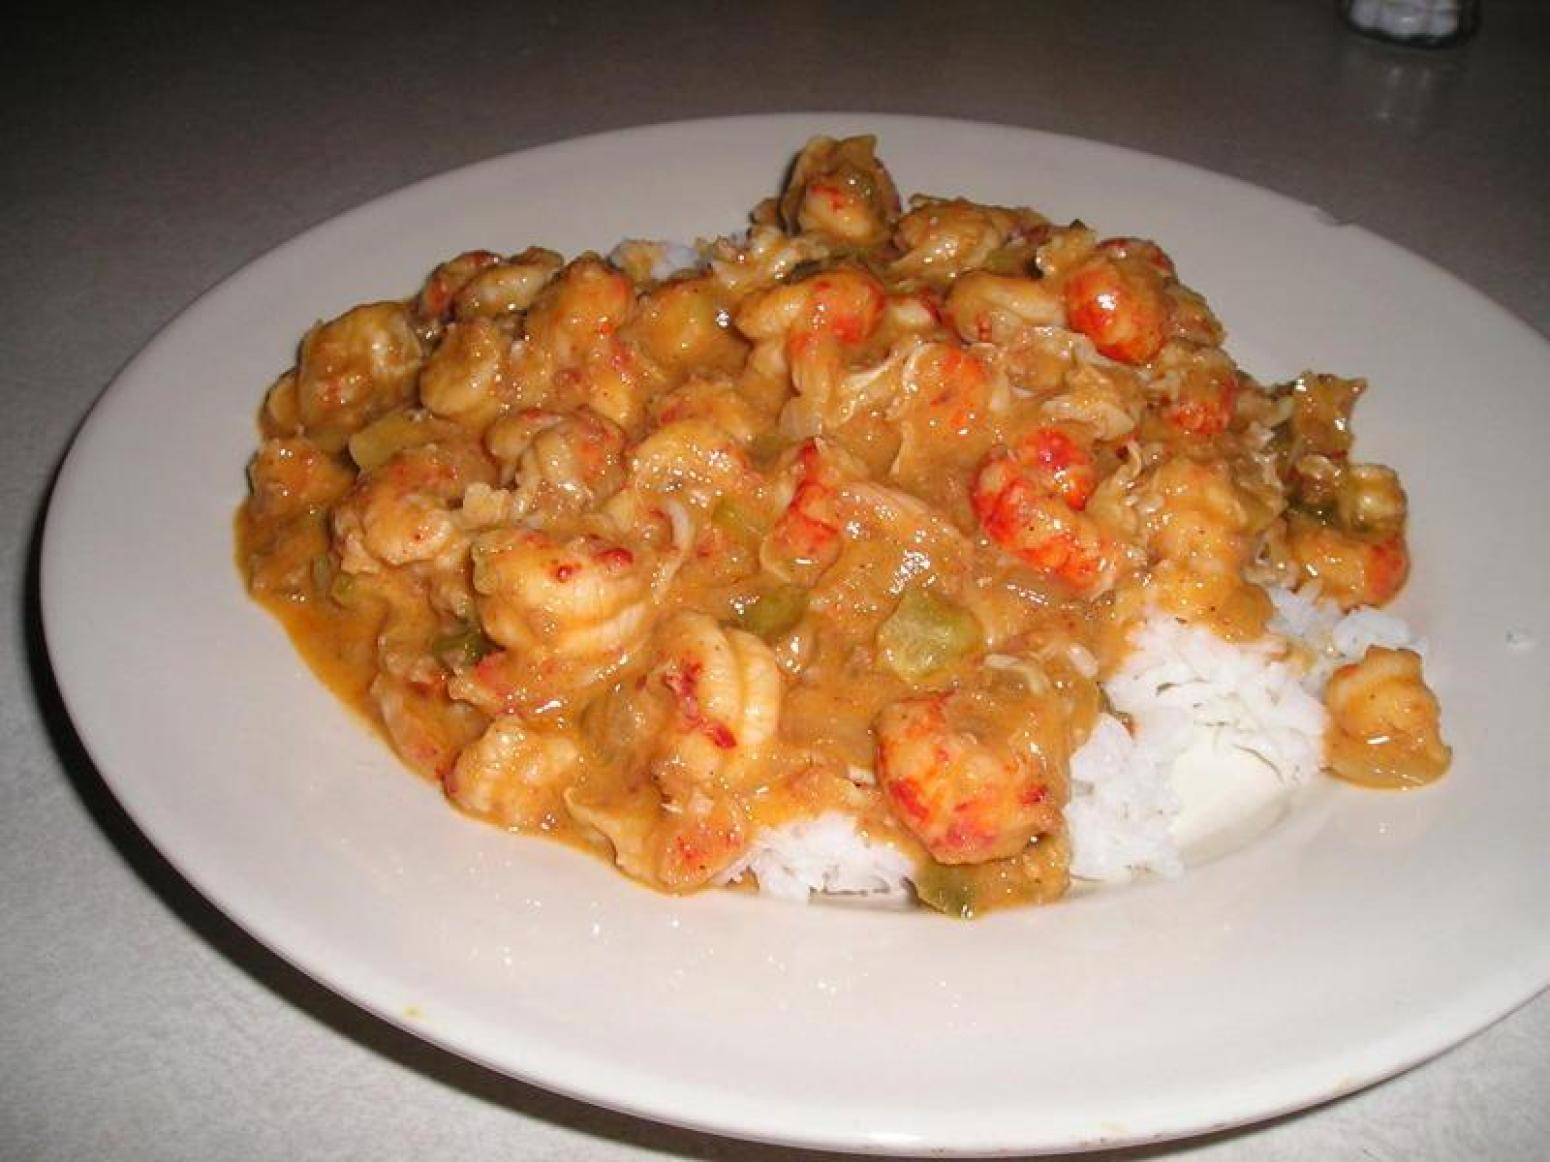 David S Louisiana Shrimp Crawfish Etouffee Recipe Just A